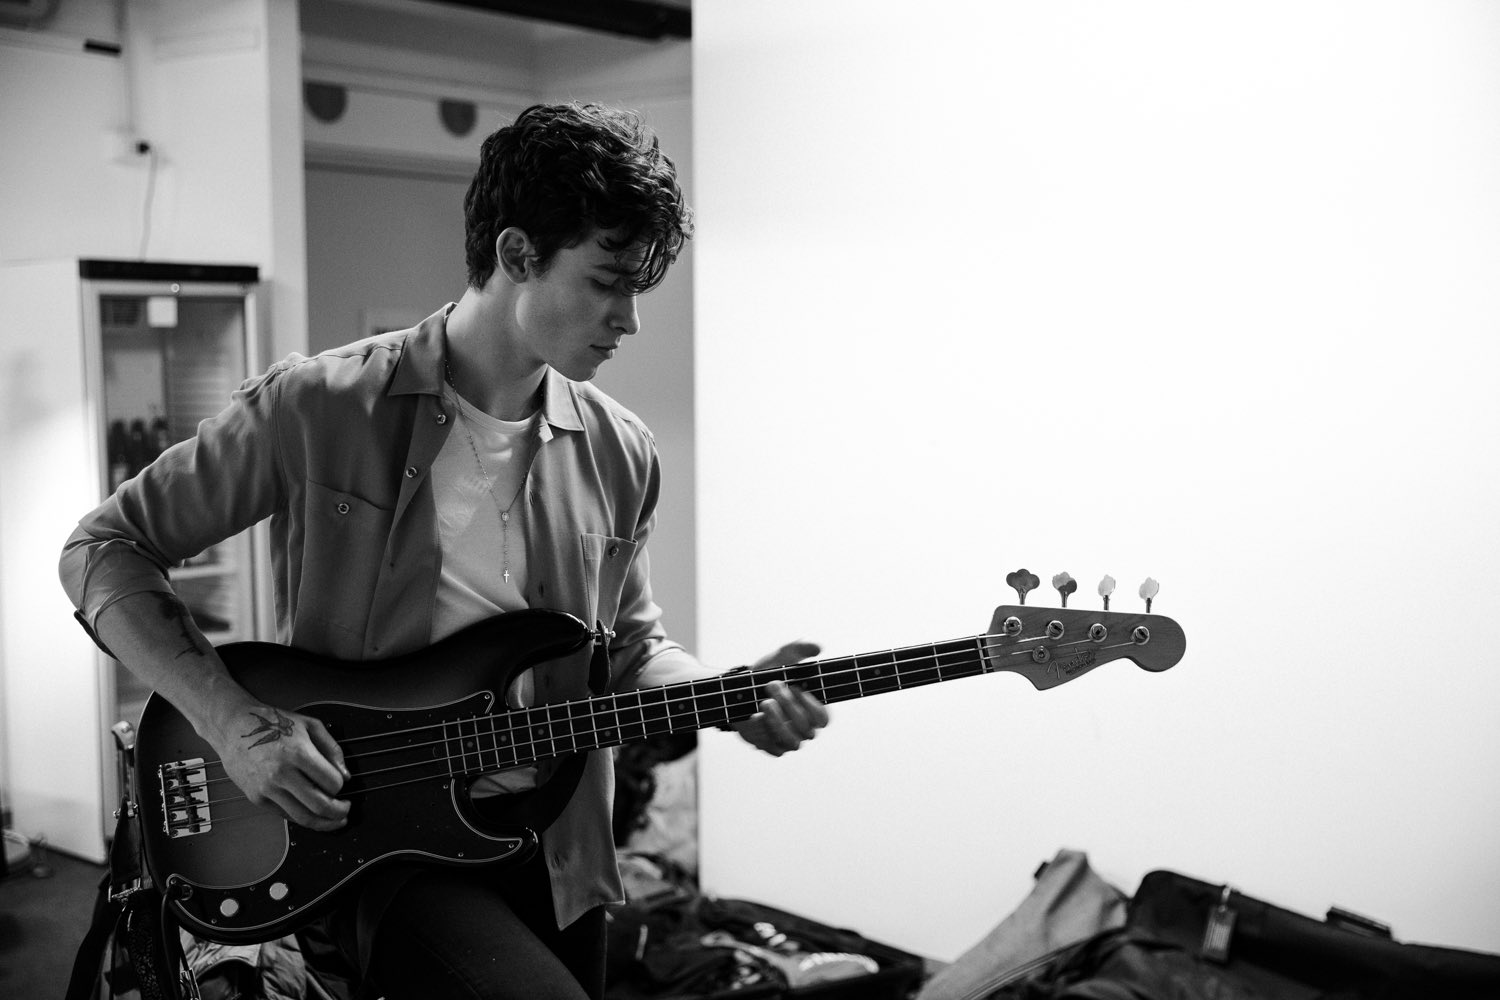 Shawn Mendes @ ShawnMendes